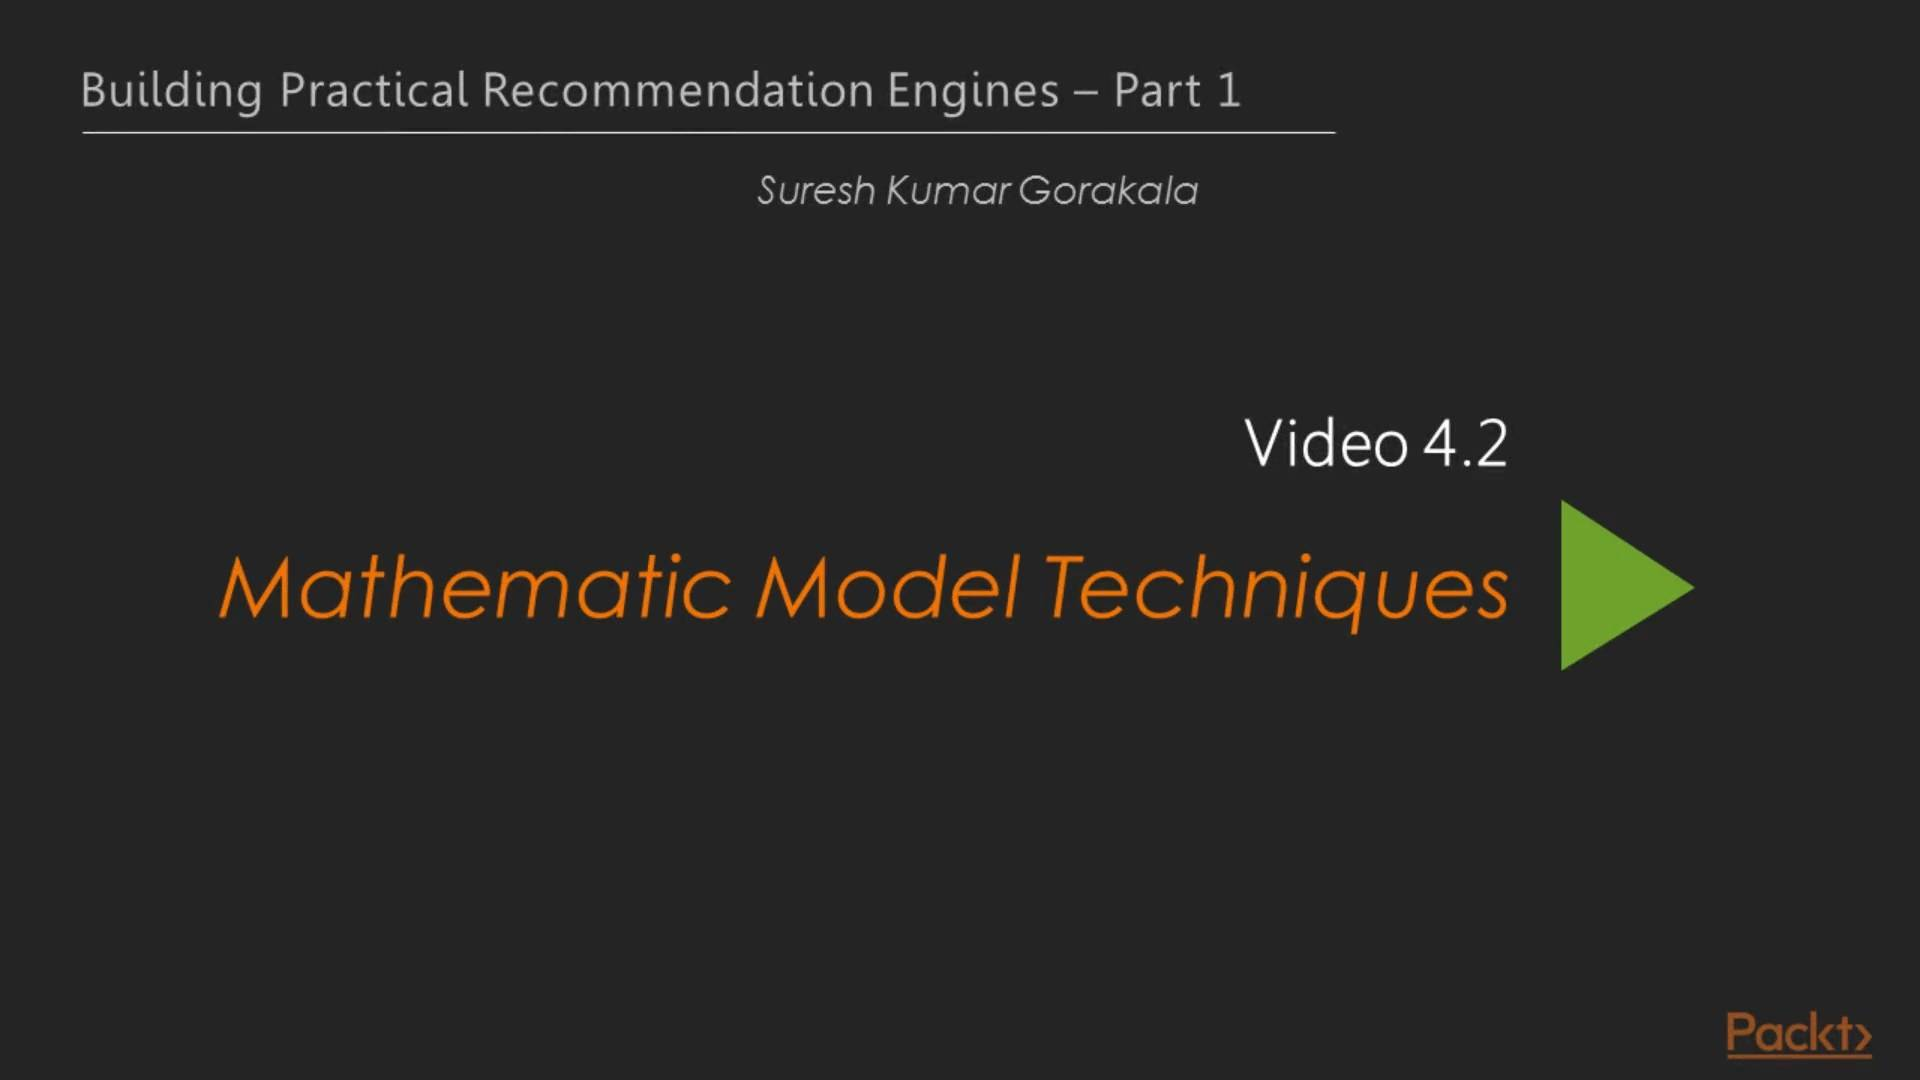 Building Practical Recommendation Engines – Part 1